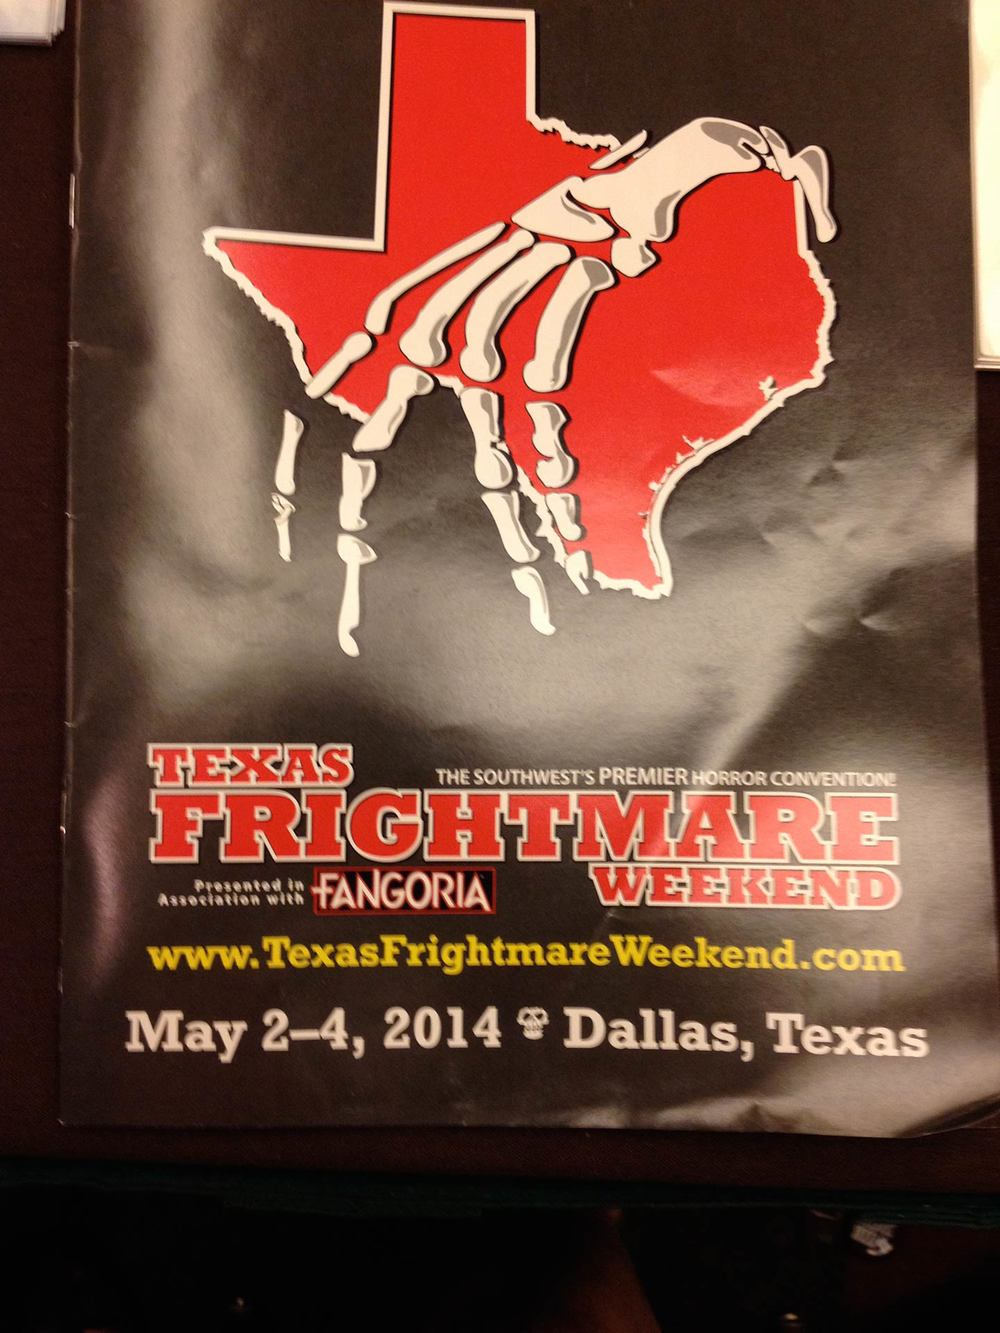 Frightmare-Weekend-Signage.jpg